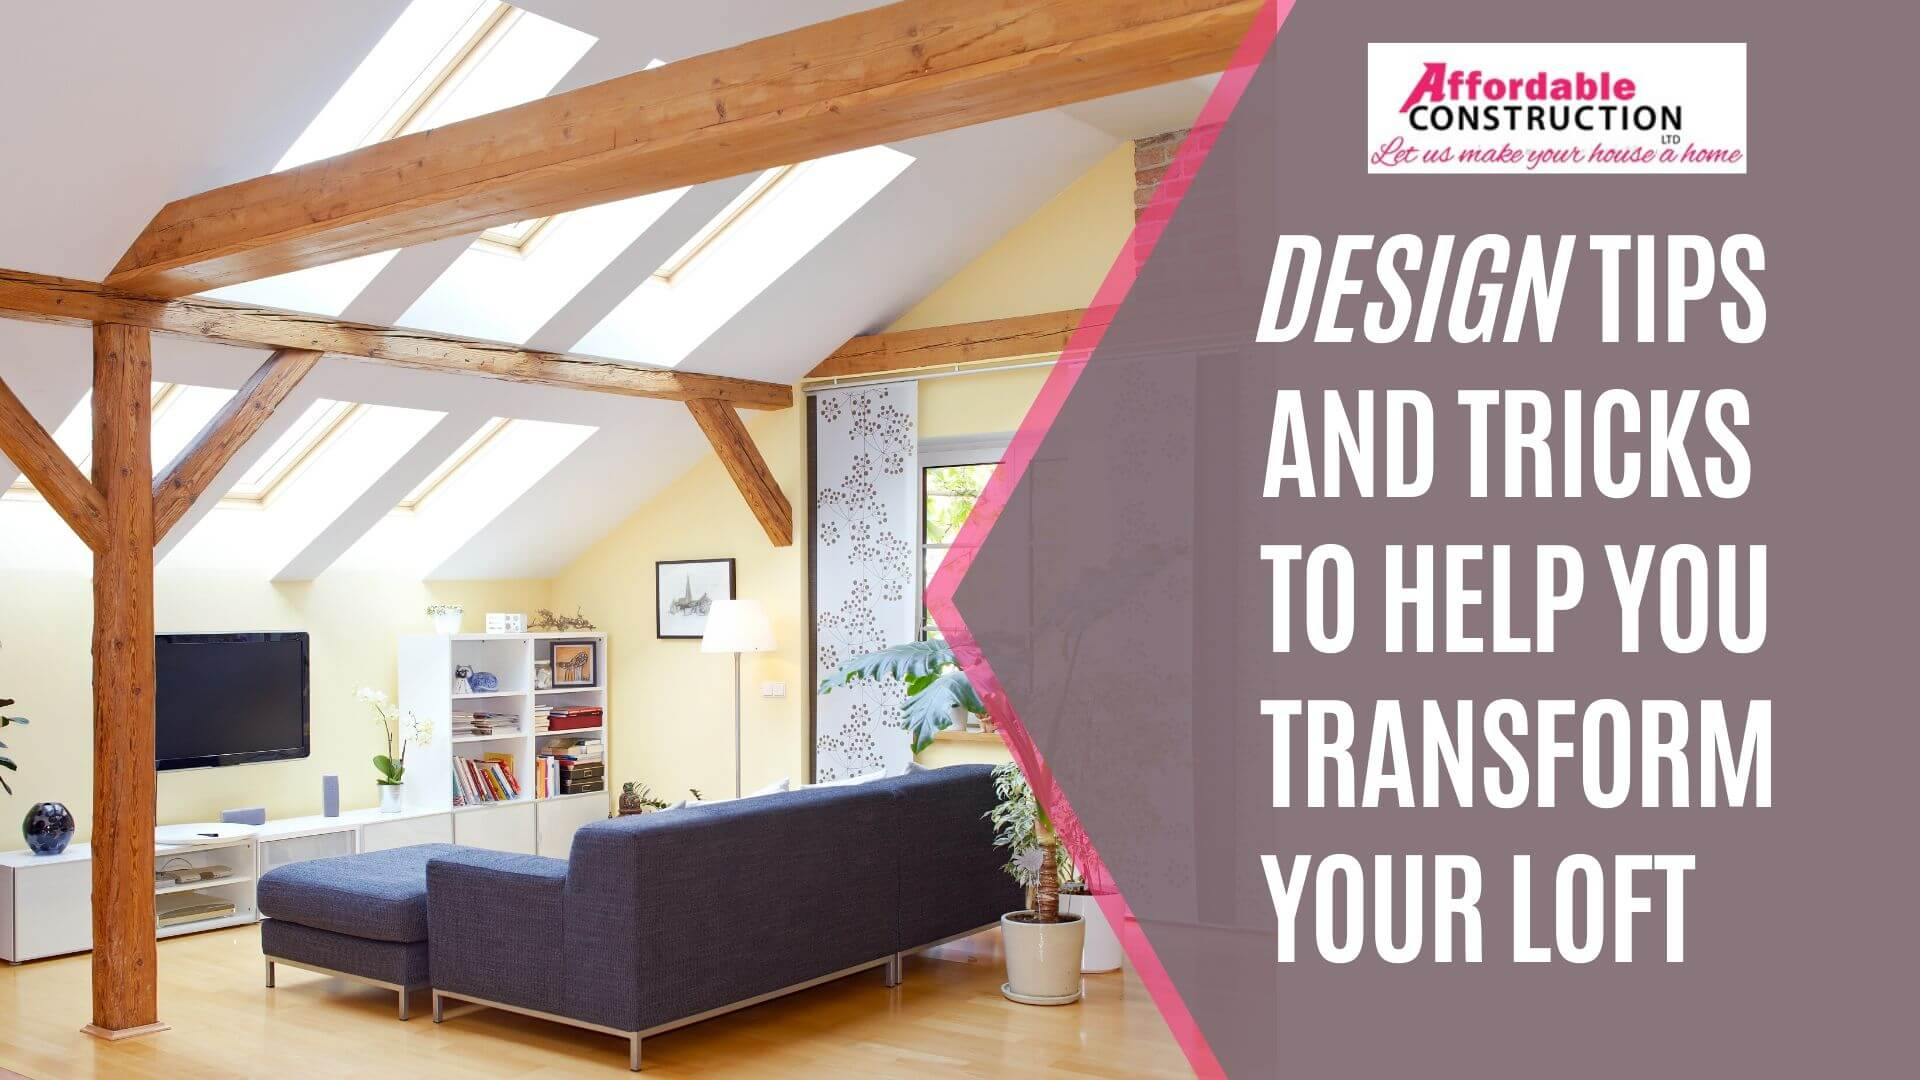 Design Tips and Tricks to Help You Transform Your Loft